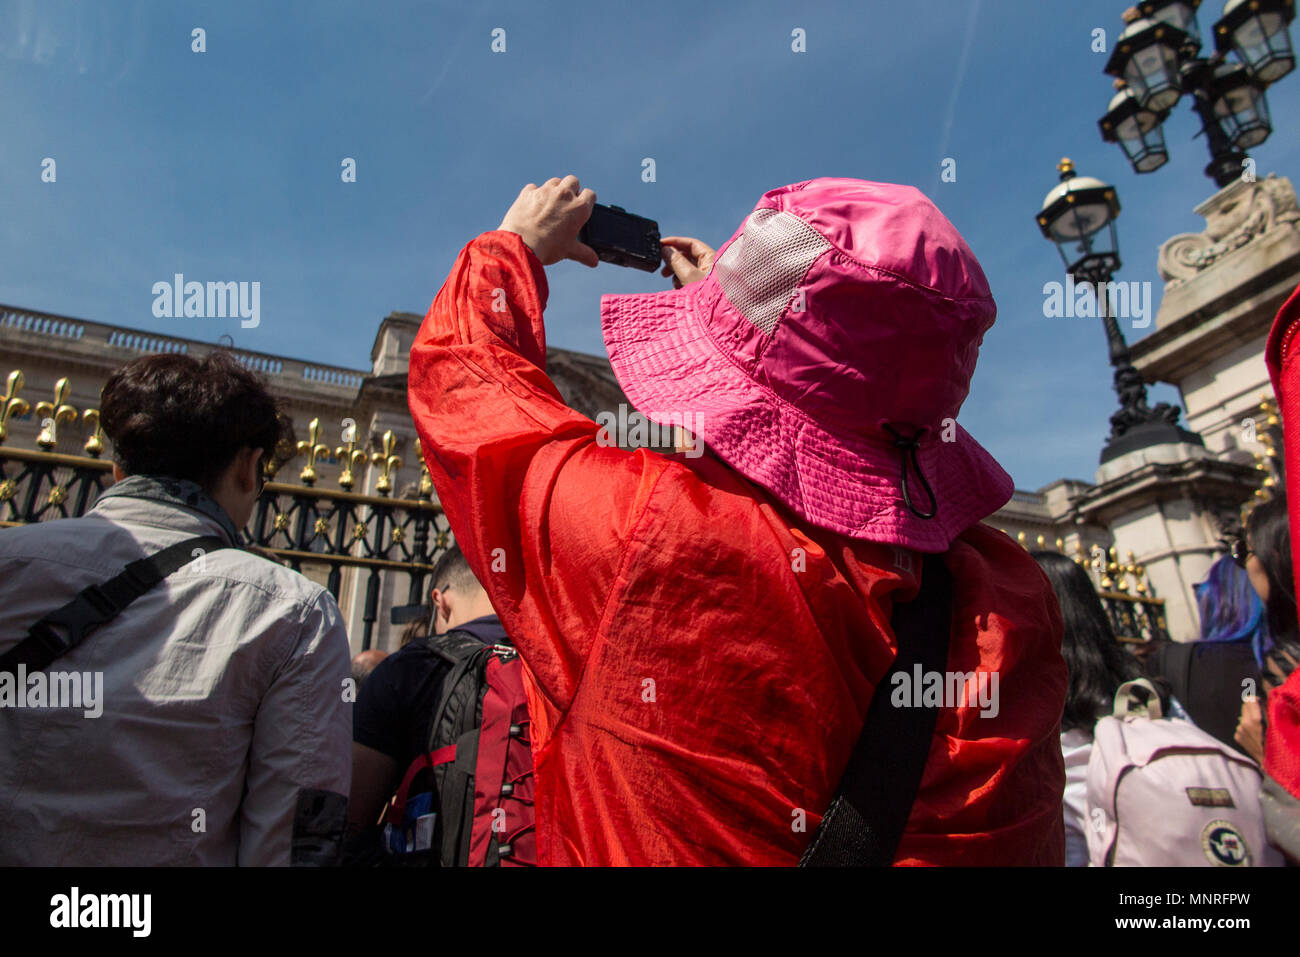 A Japanese tourist dressed in bright colours takes a picture at Buckingham Palace on a sunny day - Stock Image